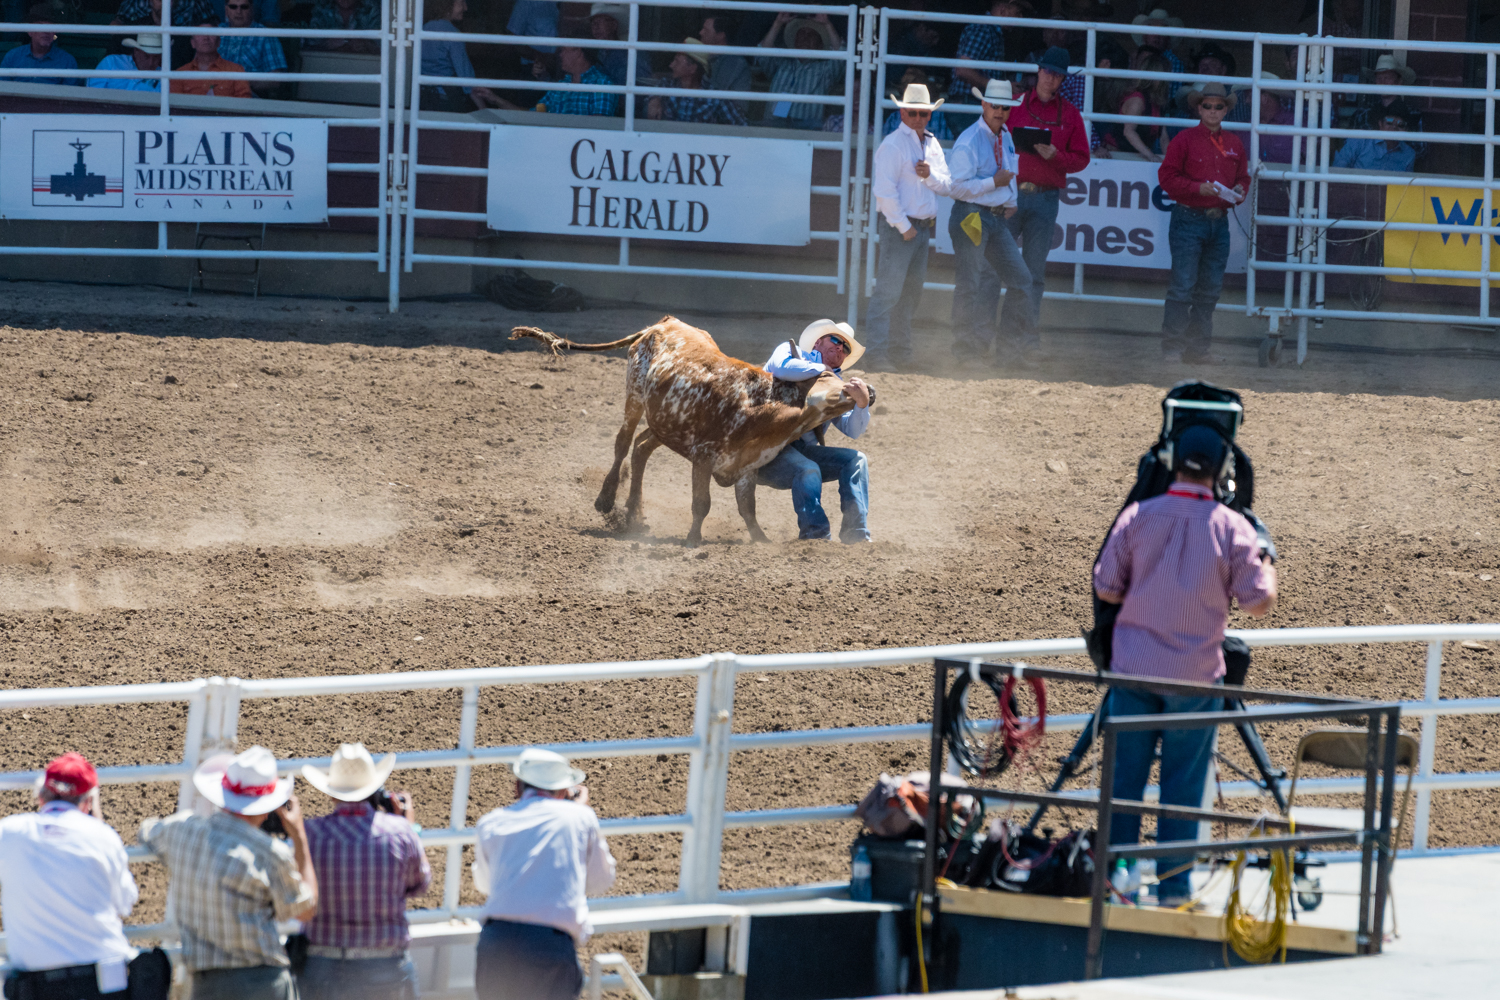 This was a timed event, with the timer stopping when the bull was fully flat on the ground.